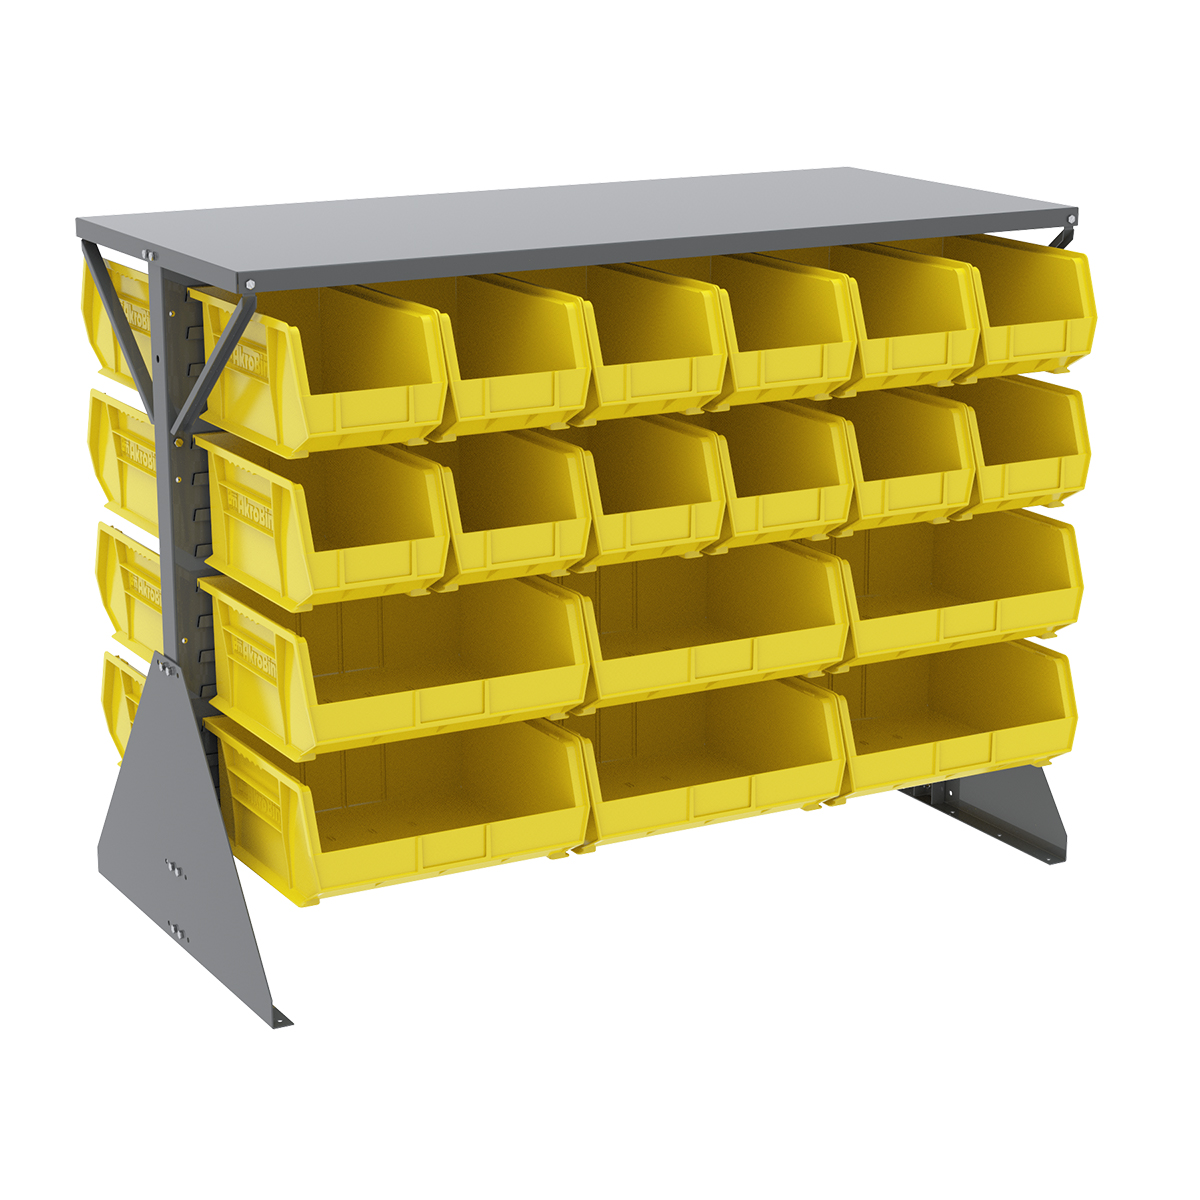 Item DISCONTINUED by Manufacturer.  Low Profile Floor Rack, 2-Sided, Shelf w/ 36 AkroBins, Gray/Yellow (30606GYASSTY).  This item sold in carton quantities of 1.